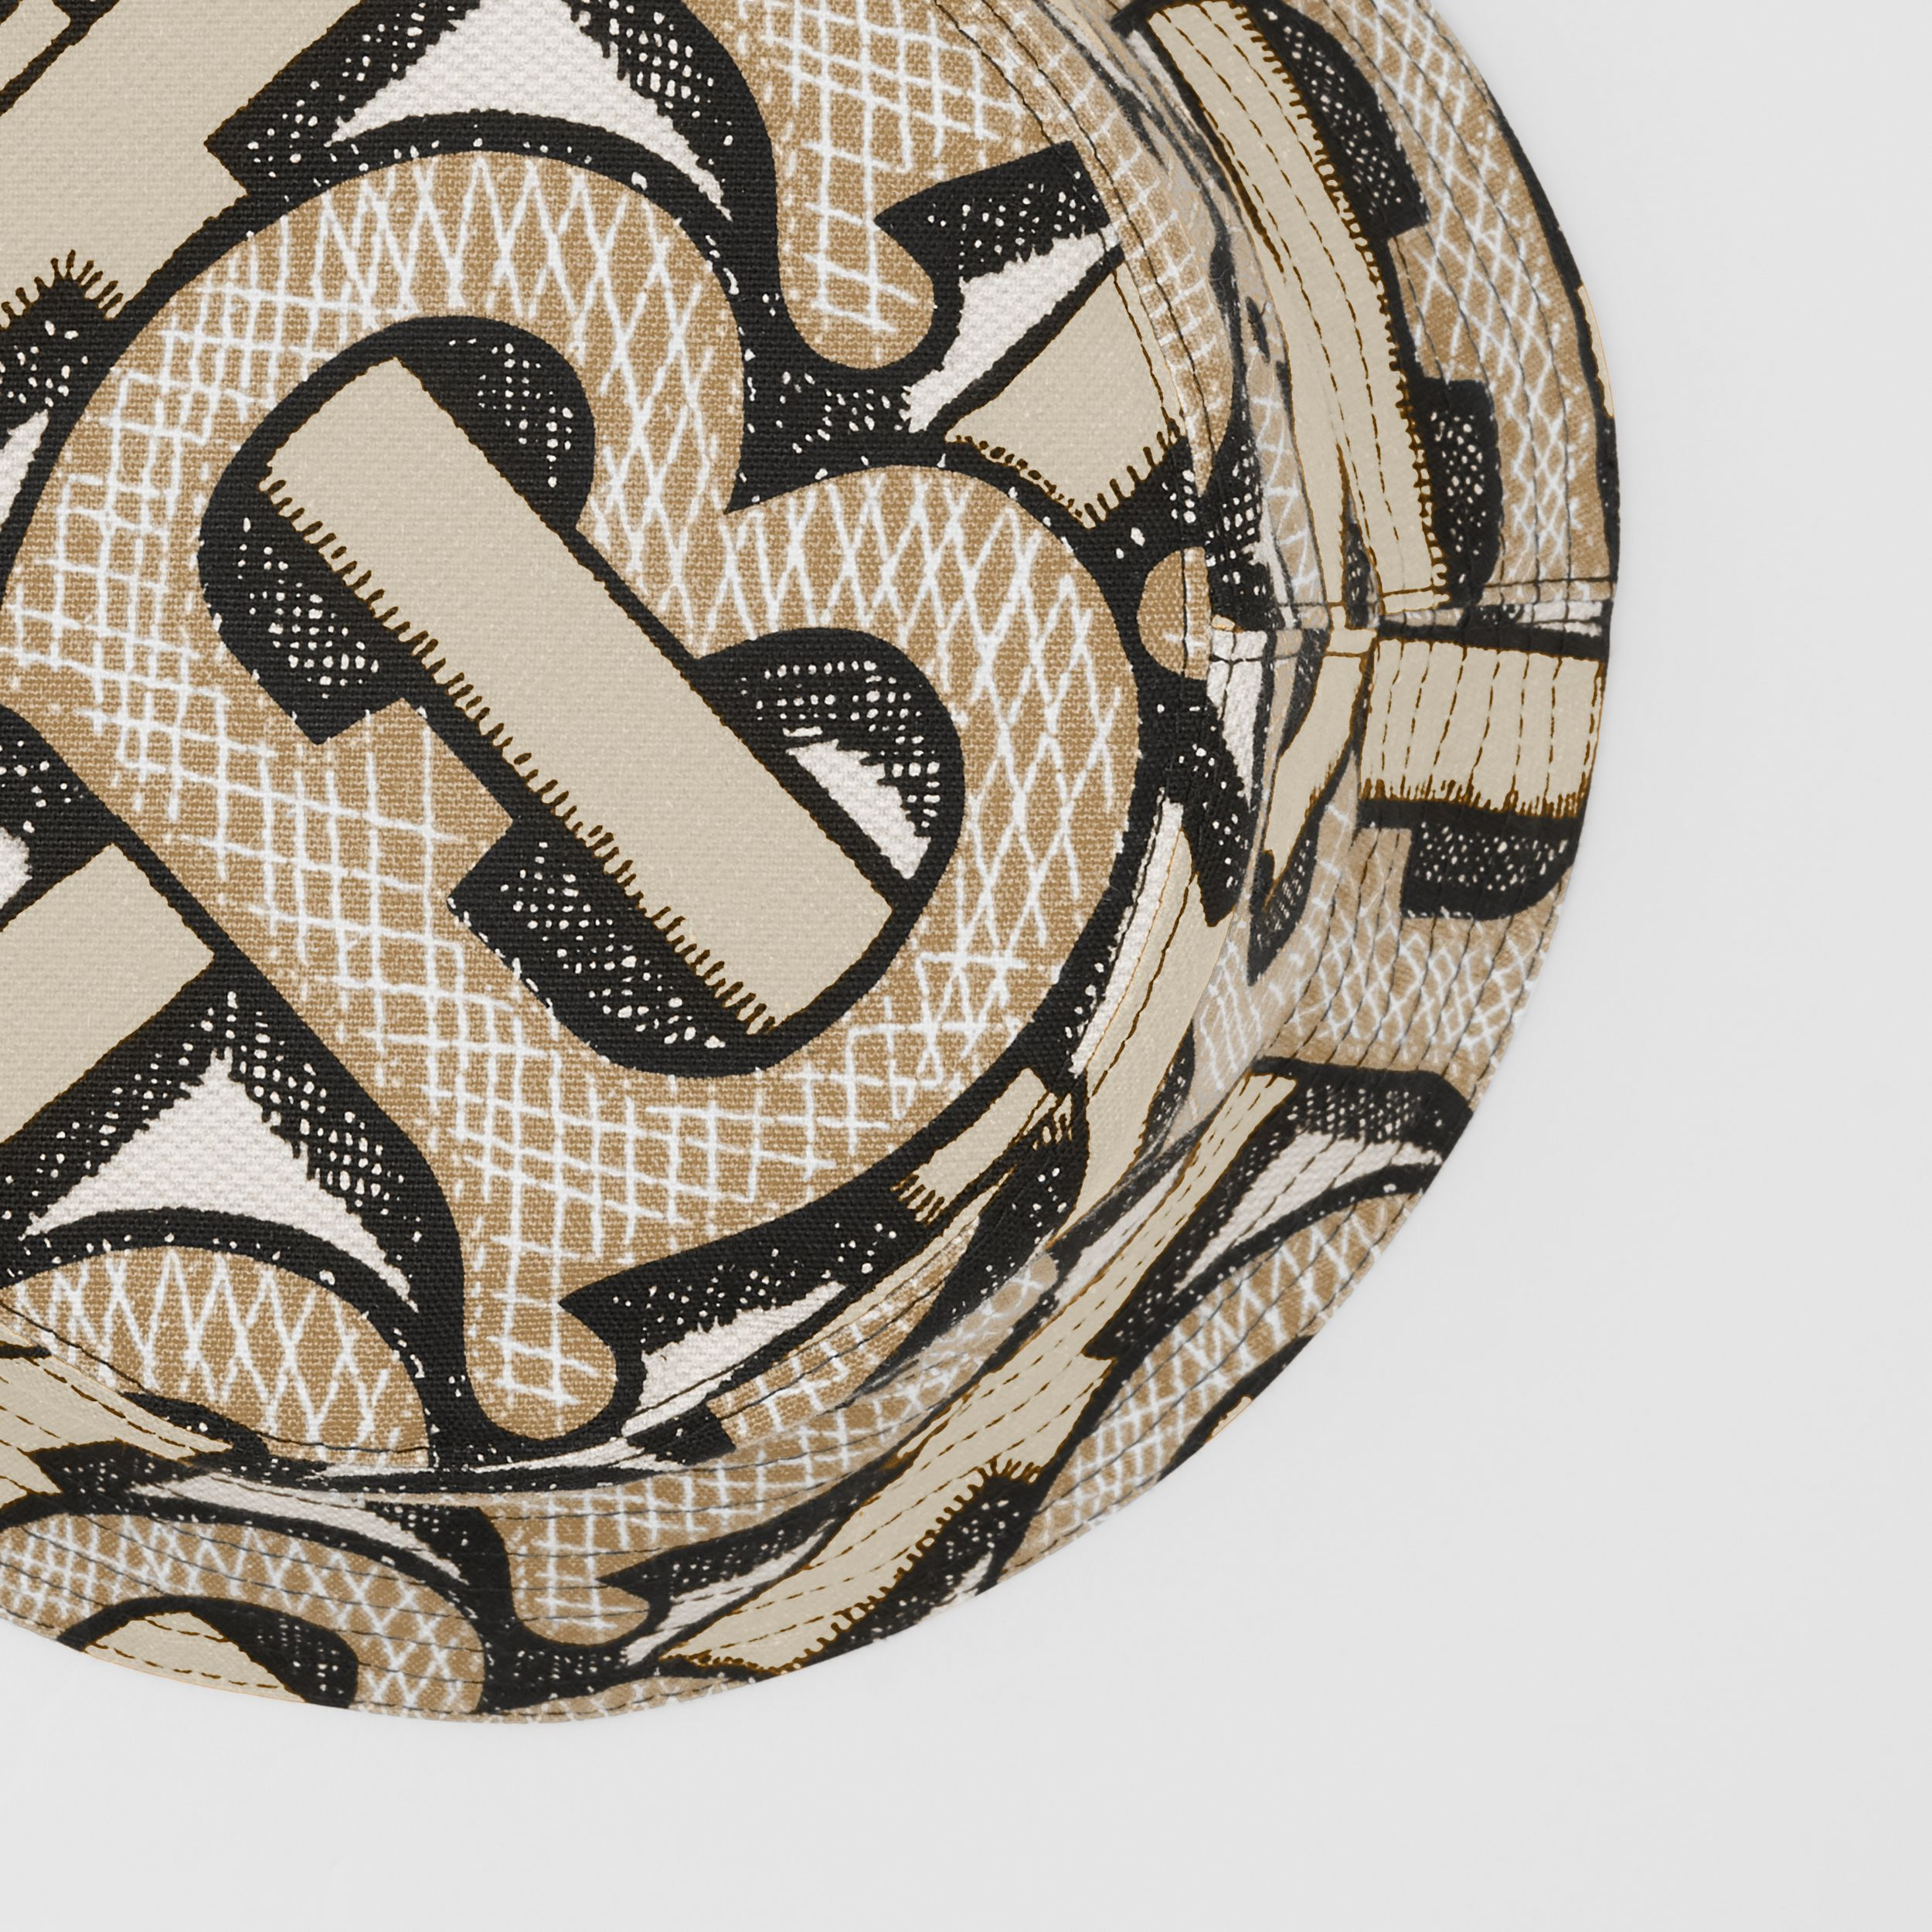 Monogram Print Cotton Canvas Bucket Hat in Dark Beige | Burberry United States - 2